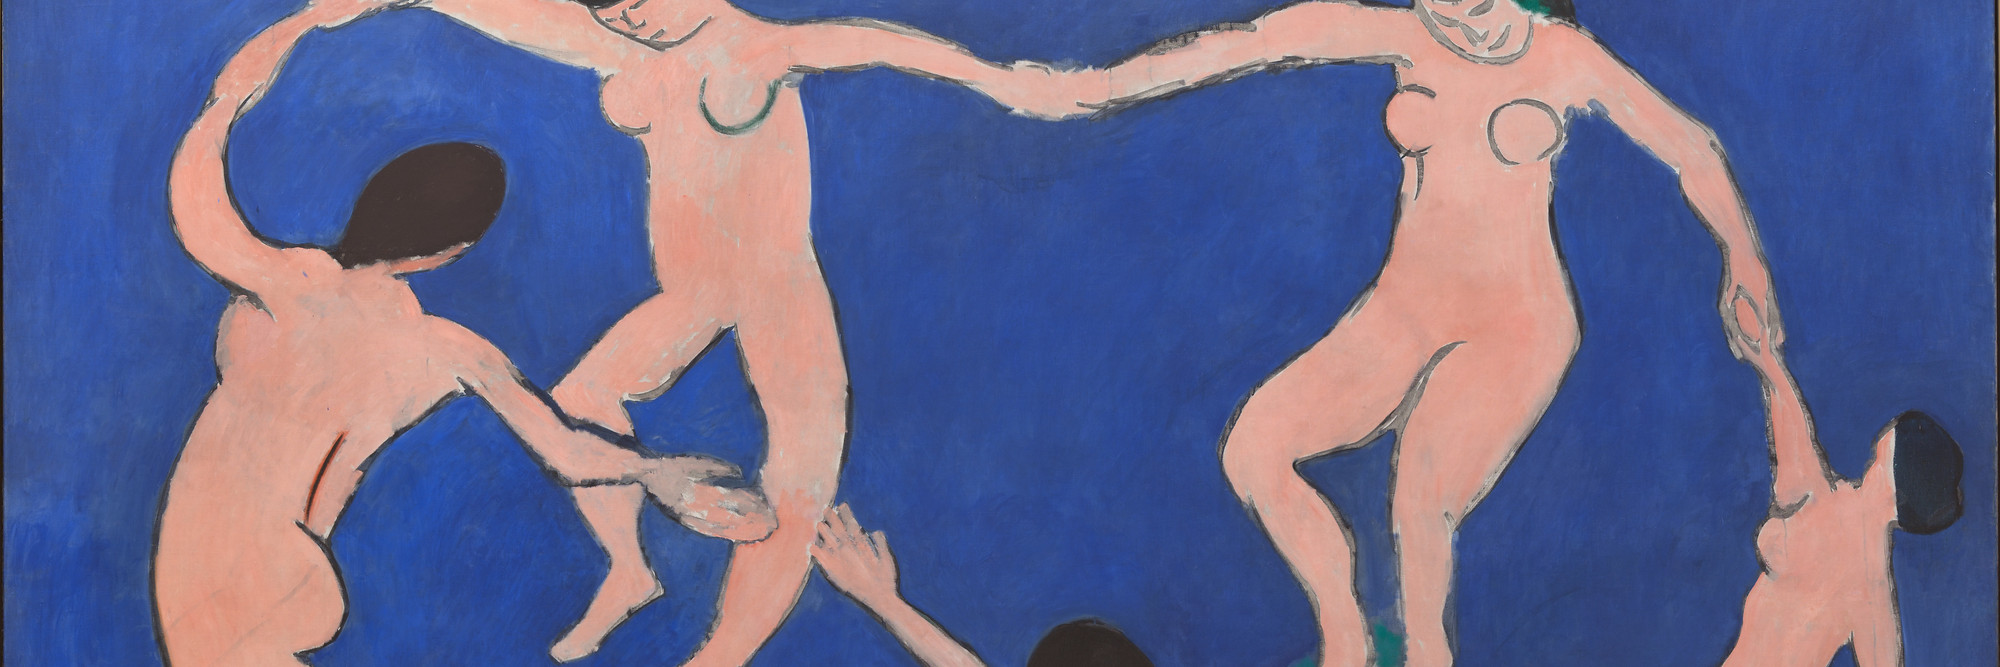 "Henri Matisse. Dance (I). 1909. Oil on canvas, 8' 6 1/2"" × 12' 9 1/2"" (259.7 × 390.1 cm). Gift of Nelson A. Rockefeller in honor of Alfred H. Barr, Jr. © 2019 Succession H. Matisse/Artists Rights Society (ARS), New York"